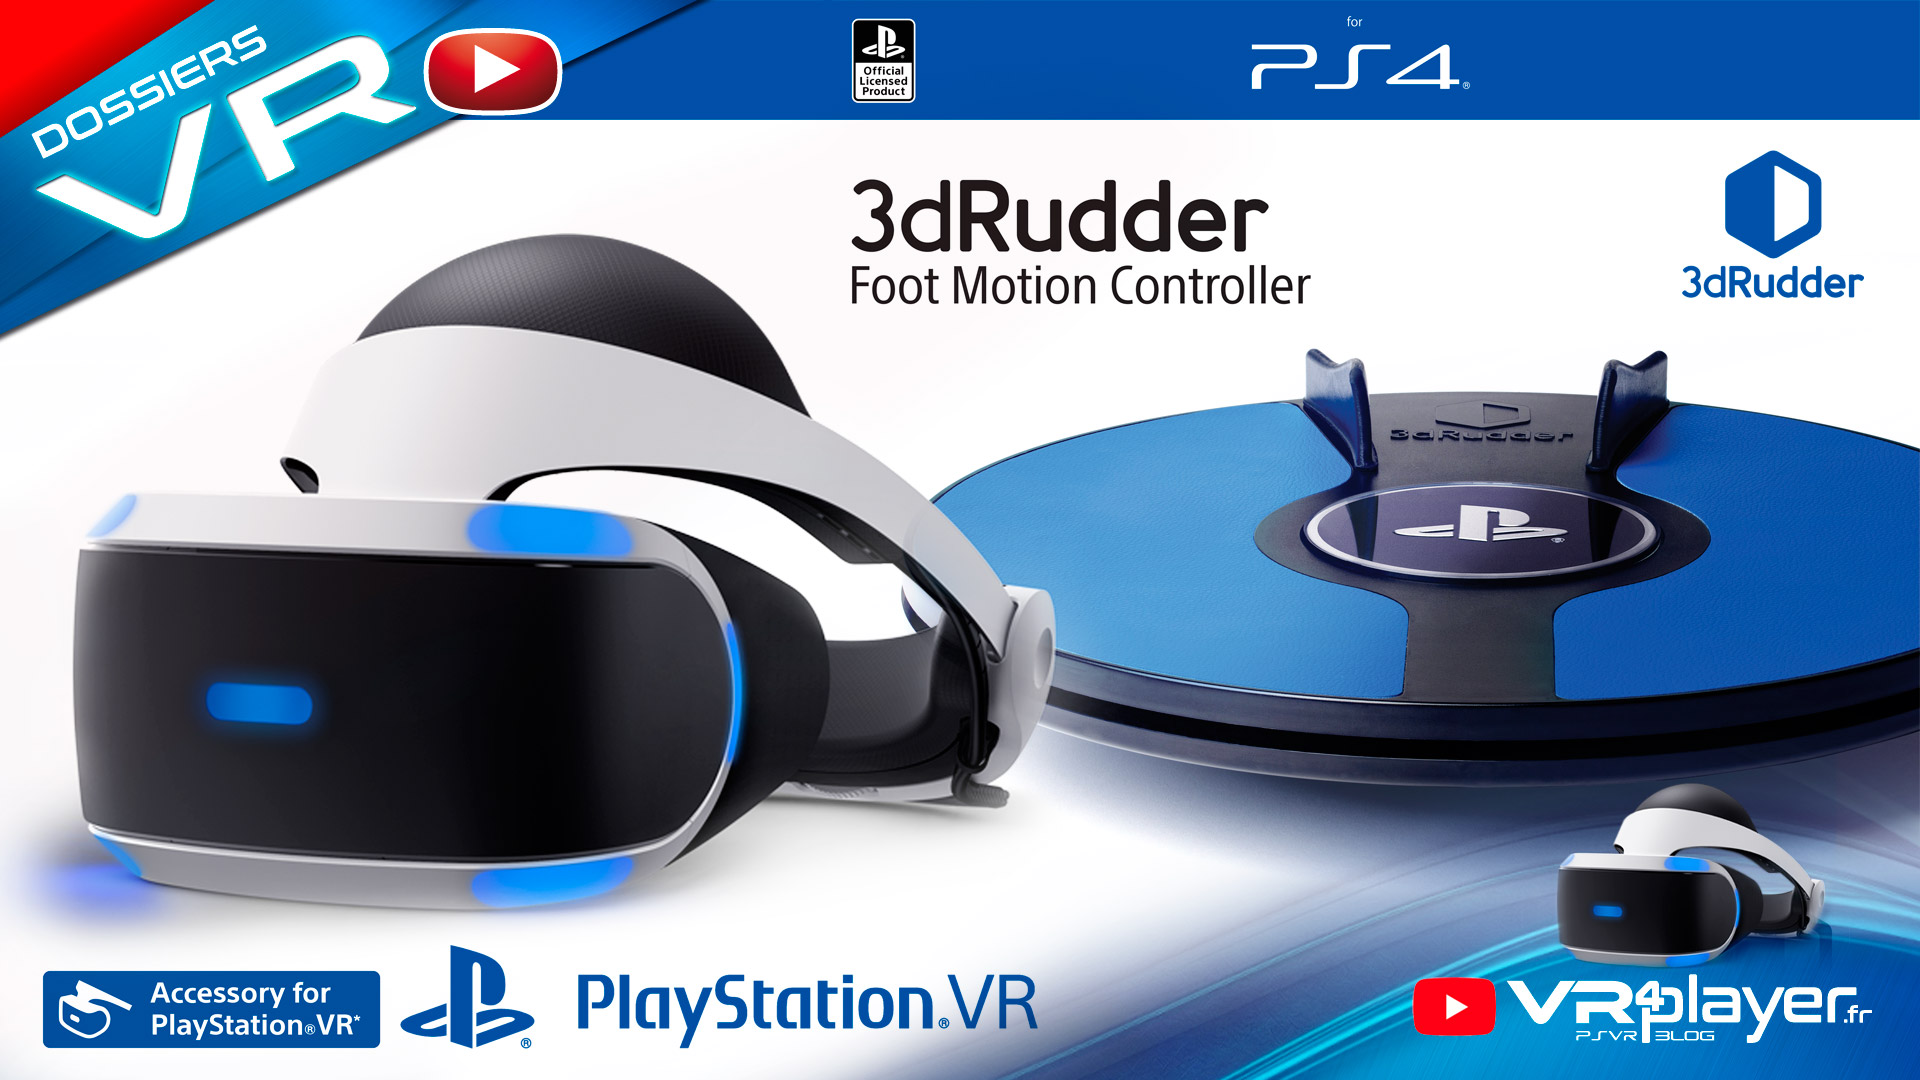 PlayStation VR PSVR 3DRudder Sortie officielle VR4Player